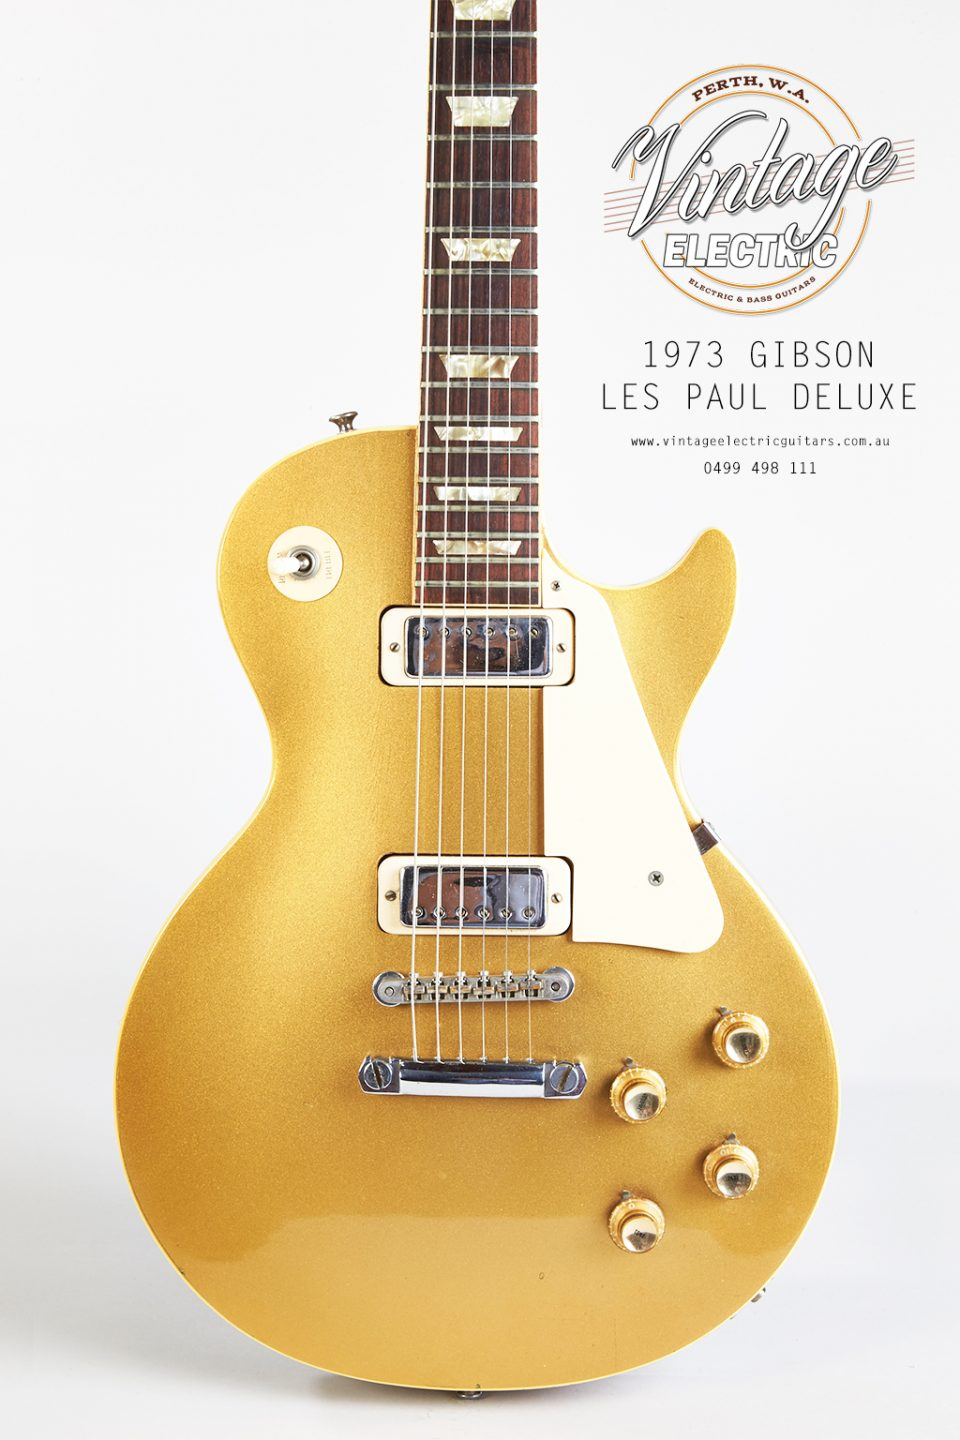 1973 Gibson Les Paul Goldtop Deluxe Body